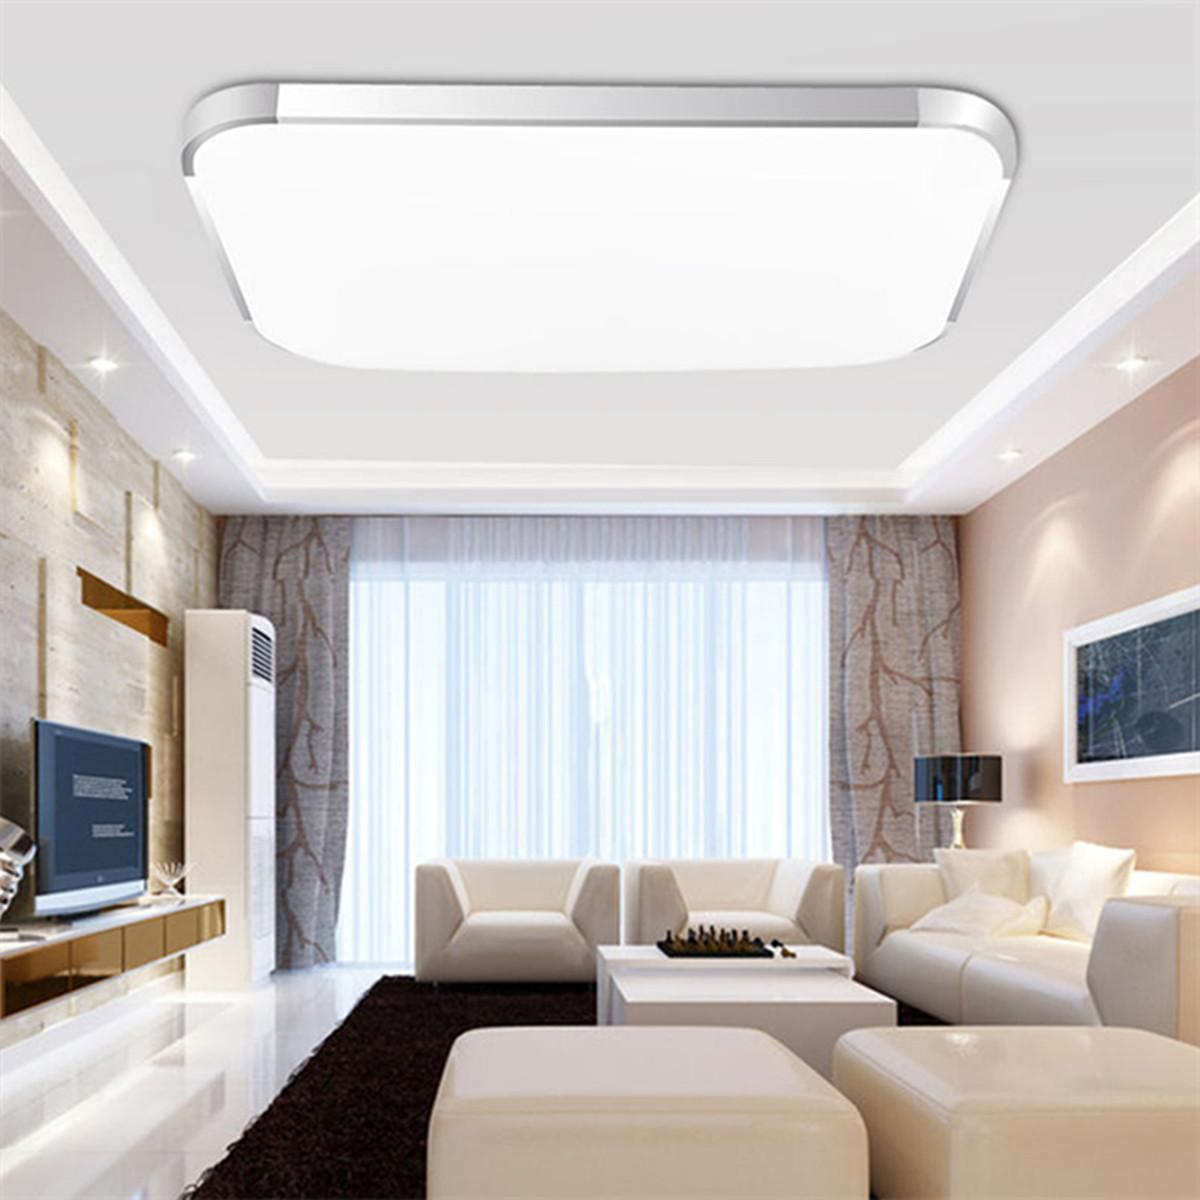 Buy Home Ceiling Lights | Home Decor | Lazada.sg Lighting Ideas For Small Dining Room Html on ideas for kitchen lighting, ideas for home office lighting, ideas for laundry room lighting, ideas for bedroom lighting, ideas for bathroom lighting, ideas for garage lighting,